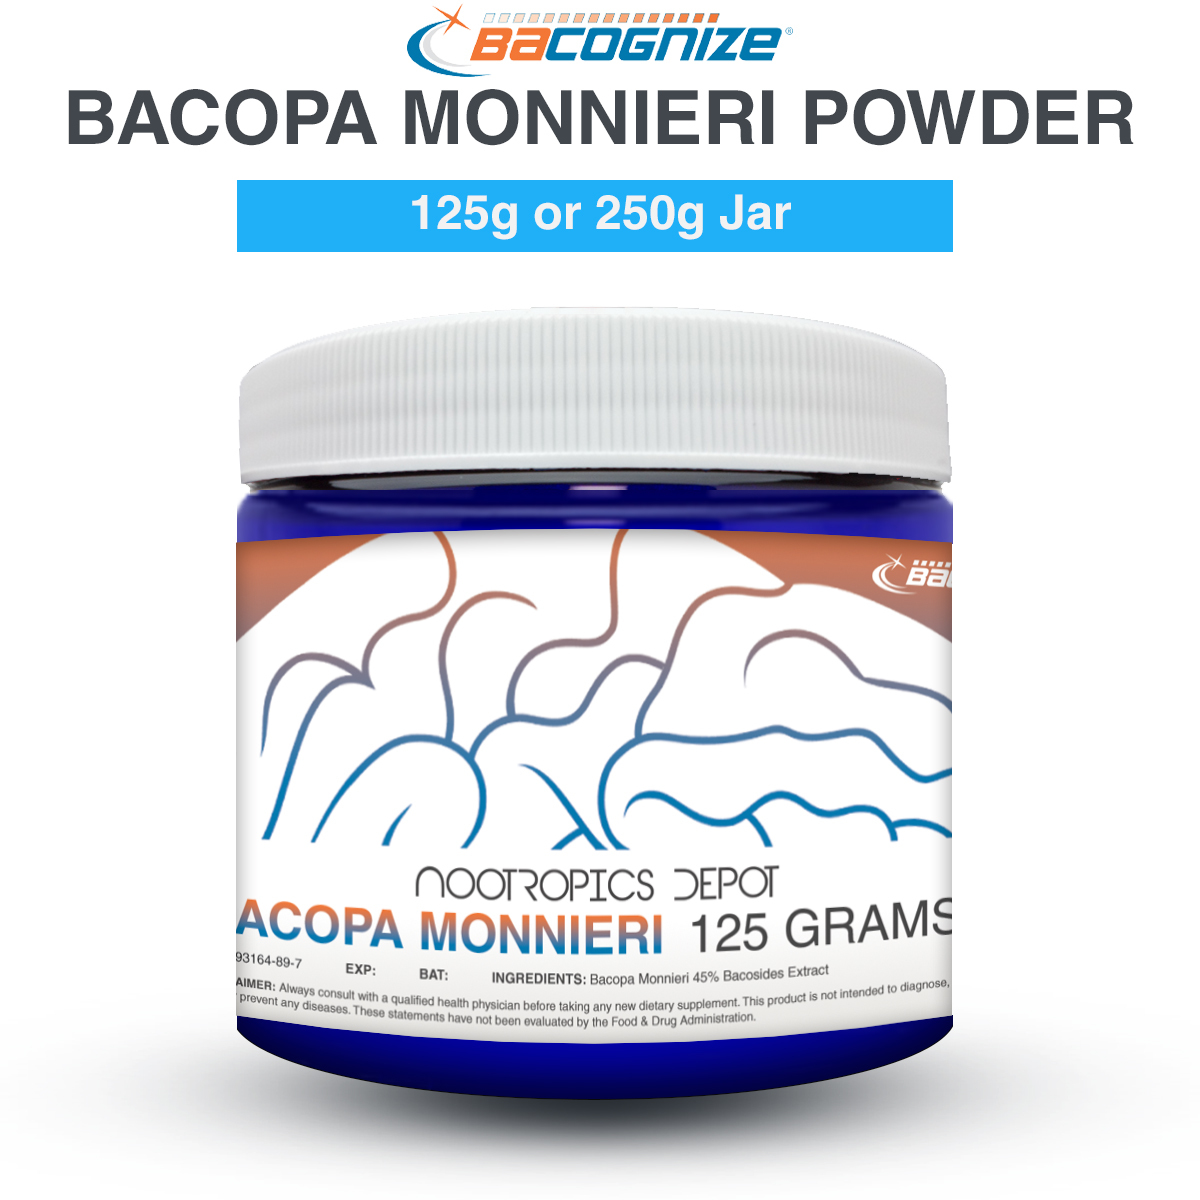 BACOGNIZE BACOPA MONNIERI POWDER